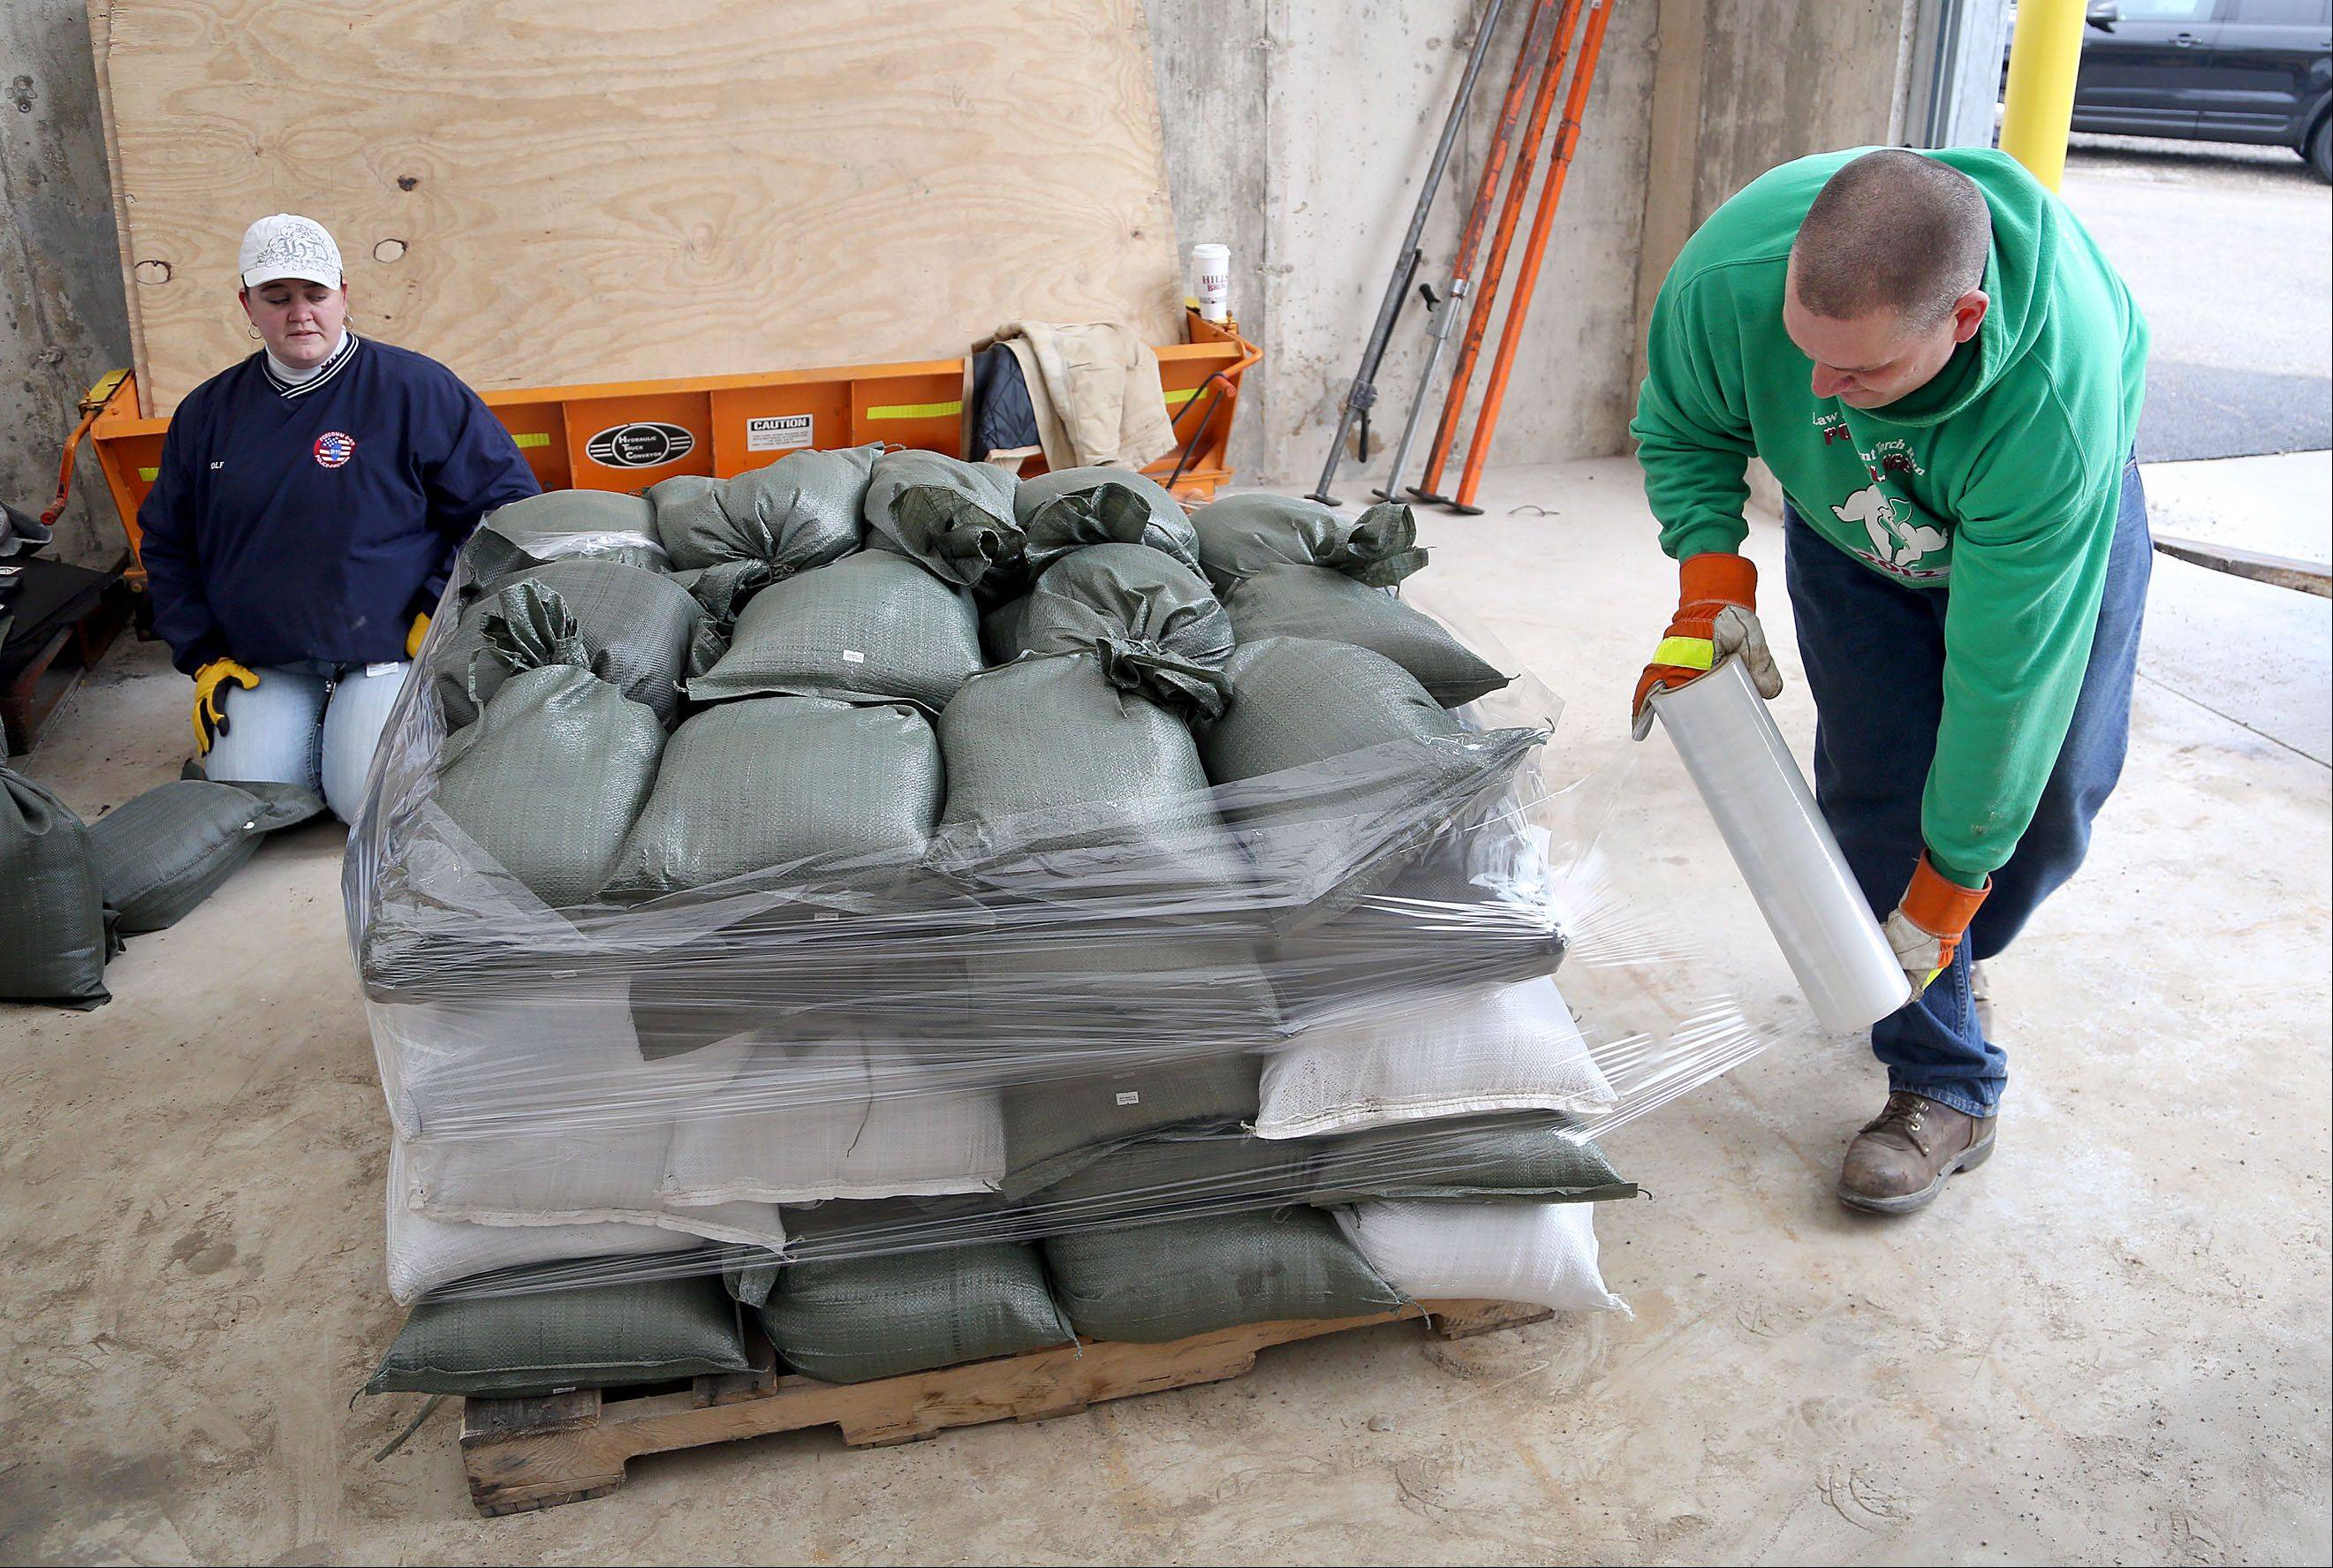 Flood sandbag collection in unincorporated areas to begin May 13